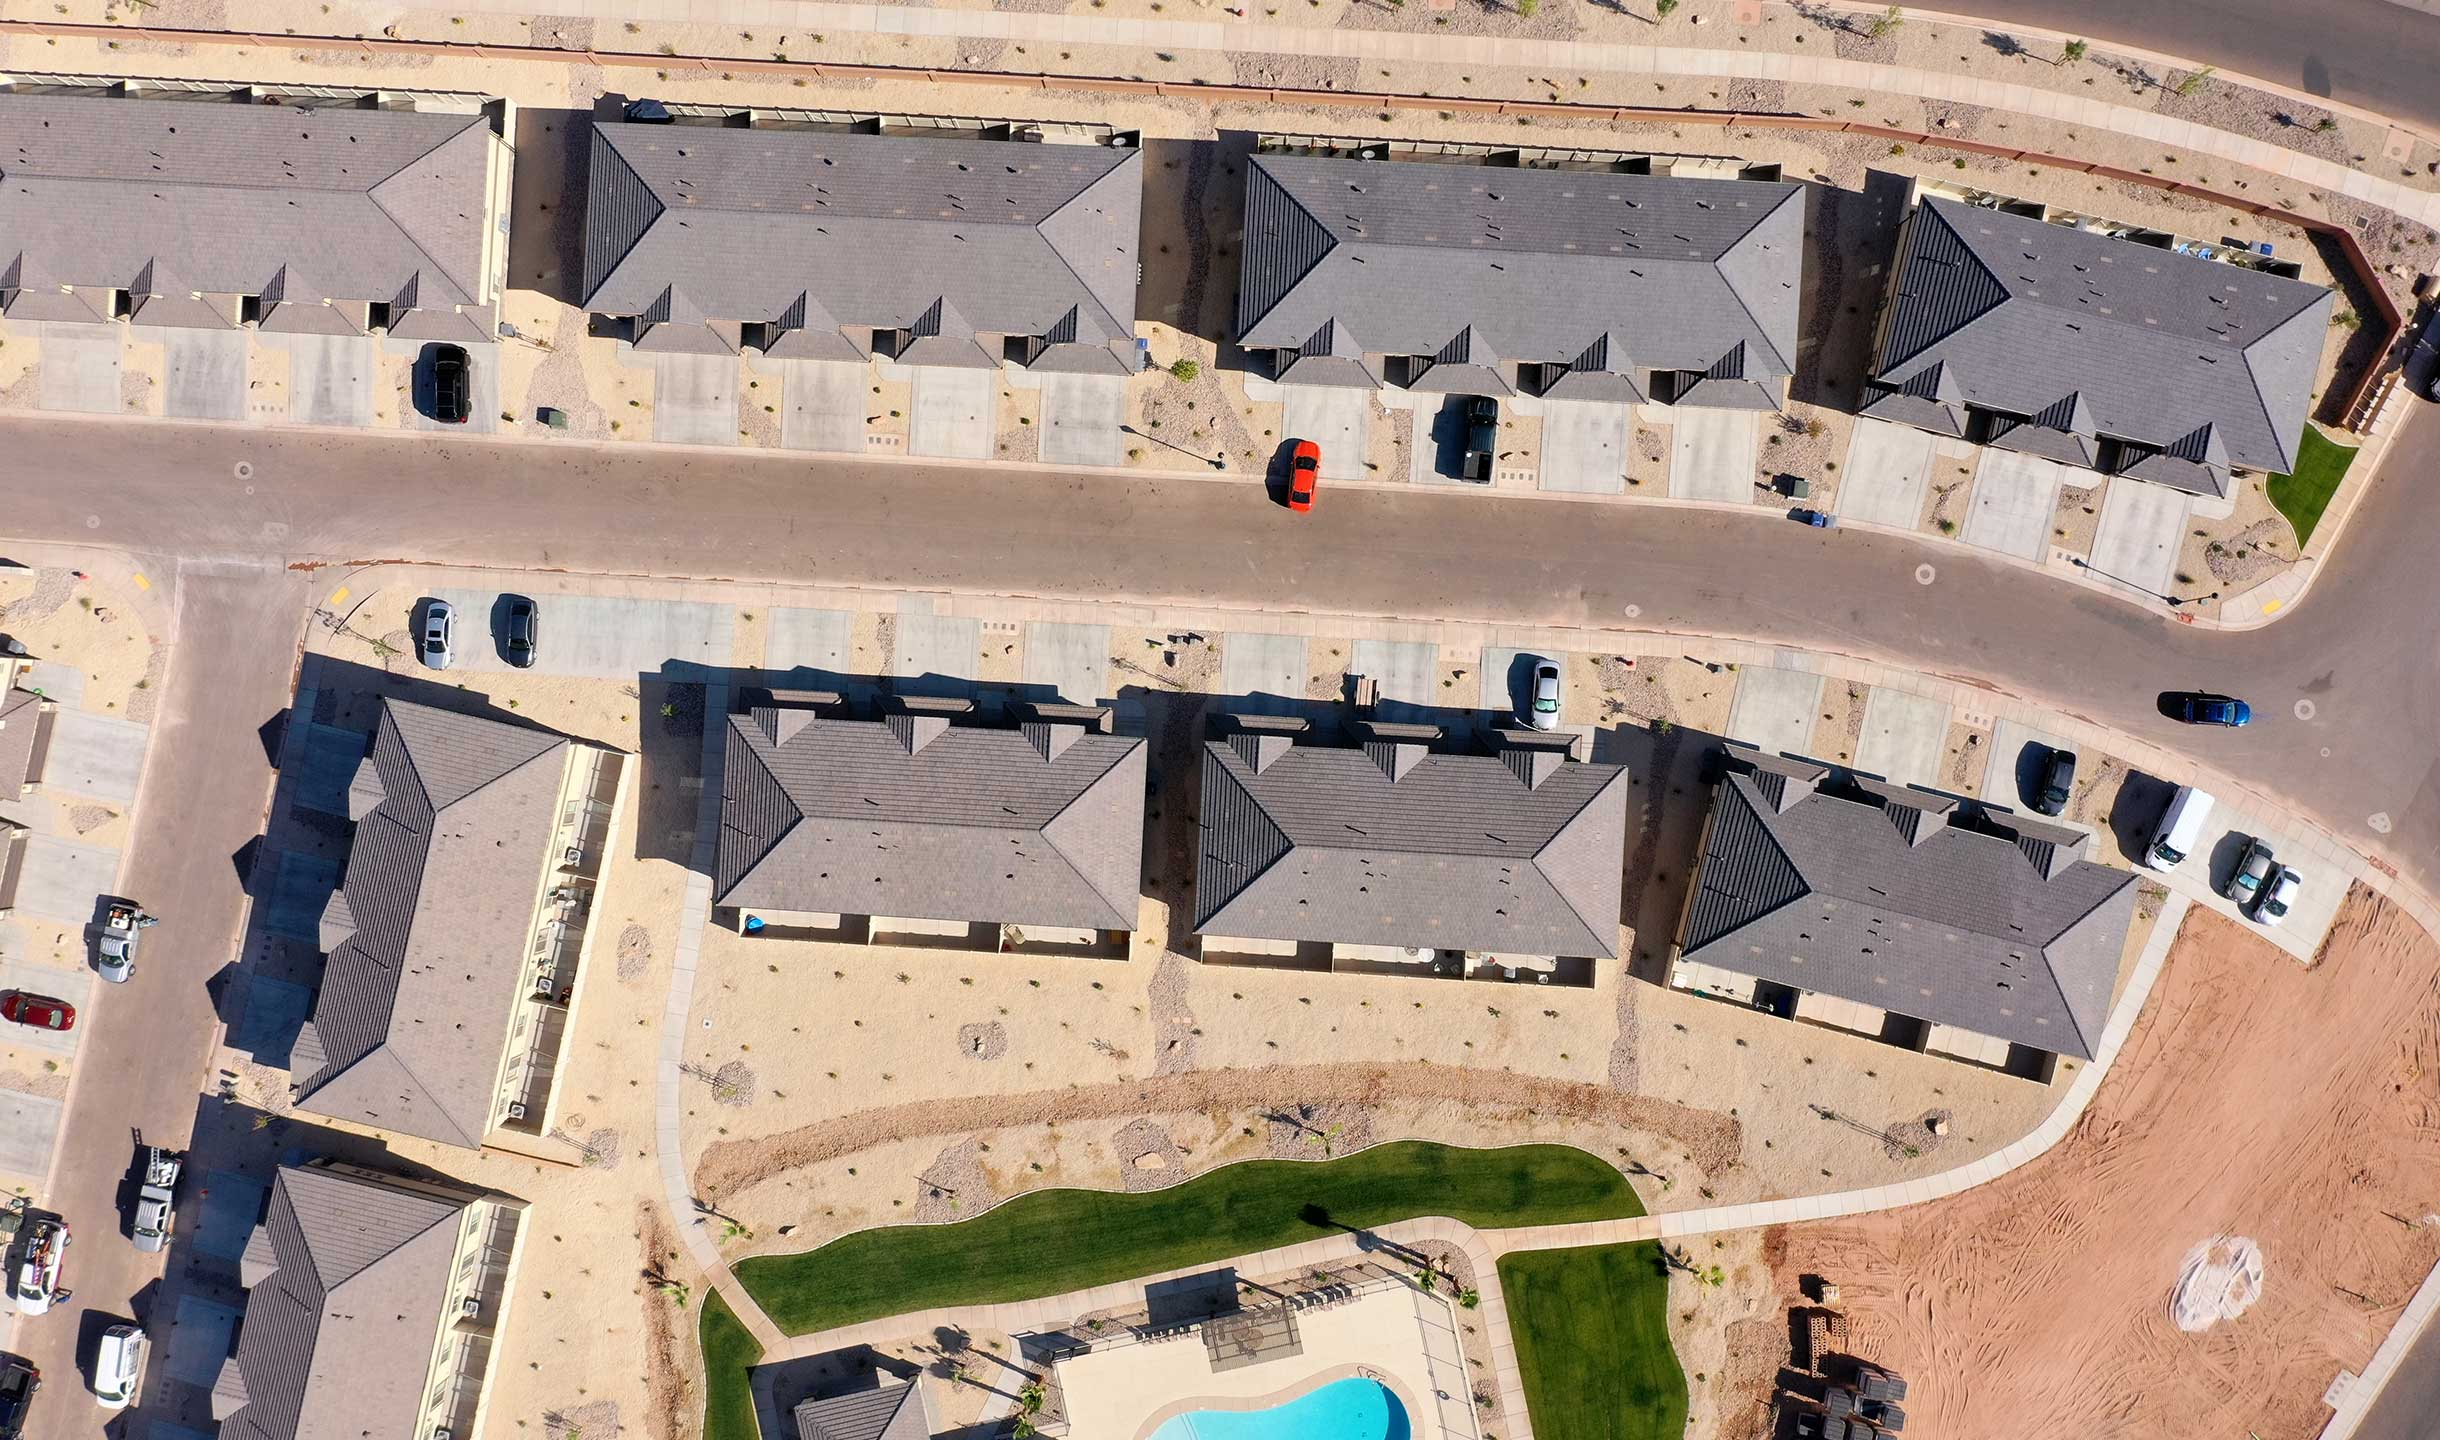 Blackhawk townhomes For Sale St. George Utah